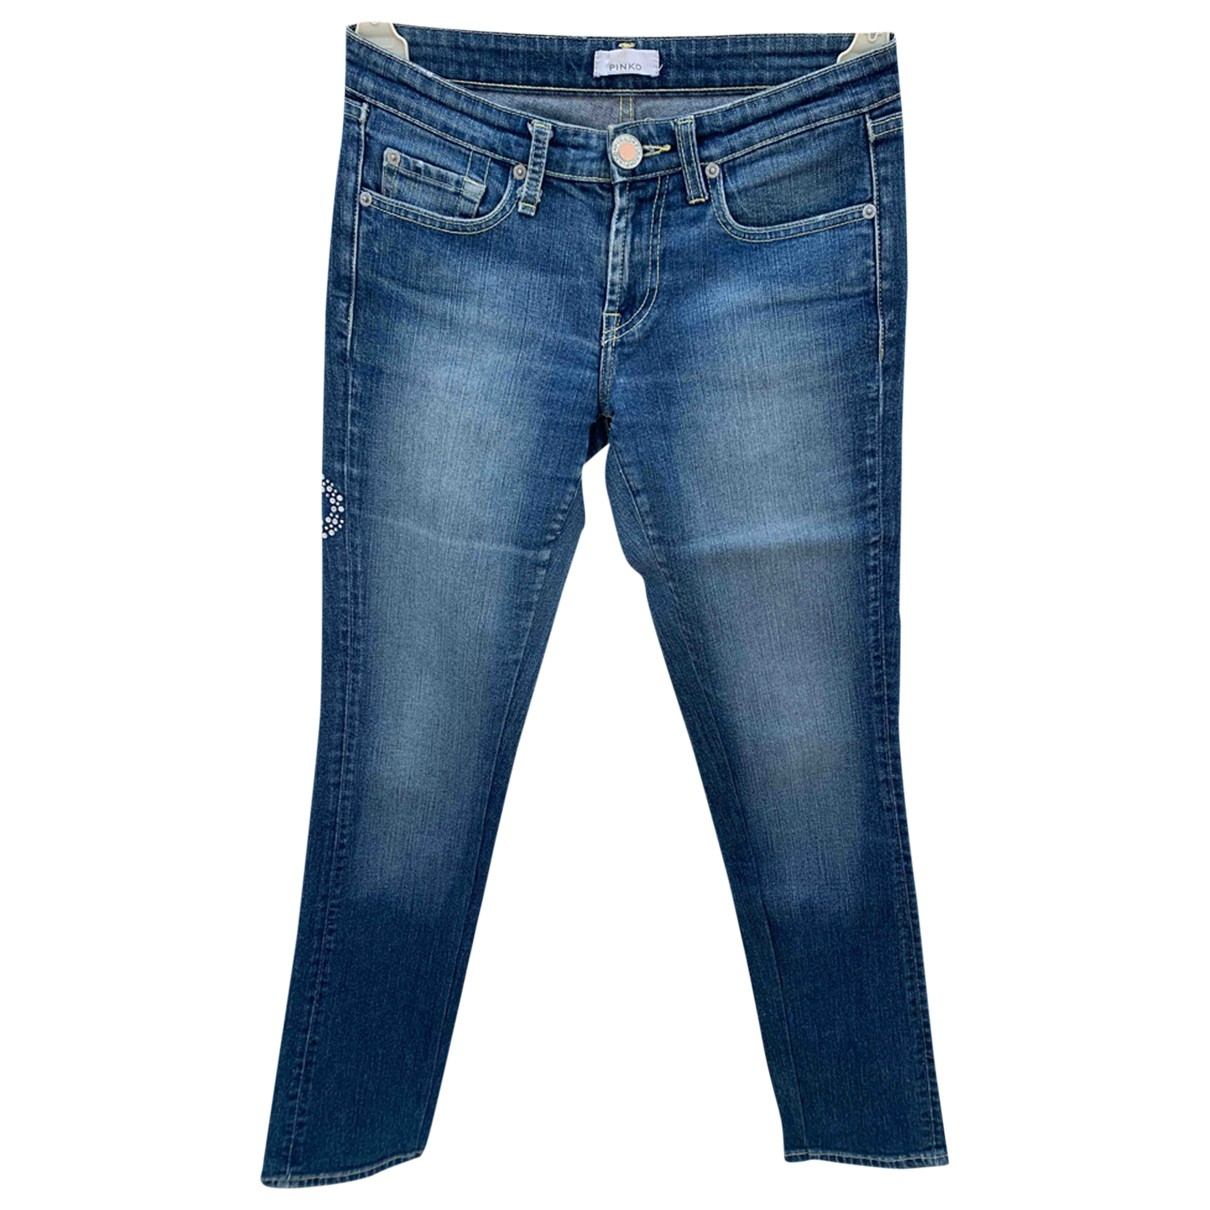 Pinko \N Blue Denim - Jeans Jeans for Women 28 US